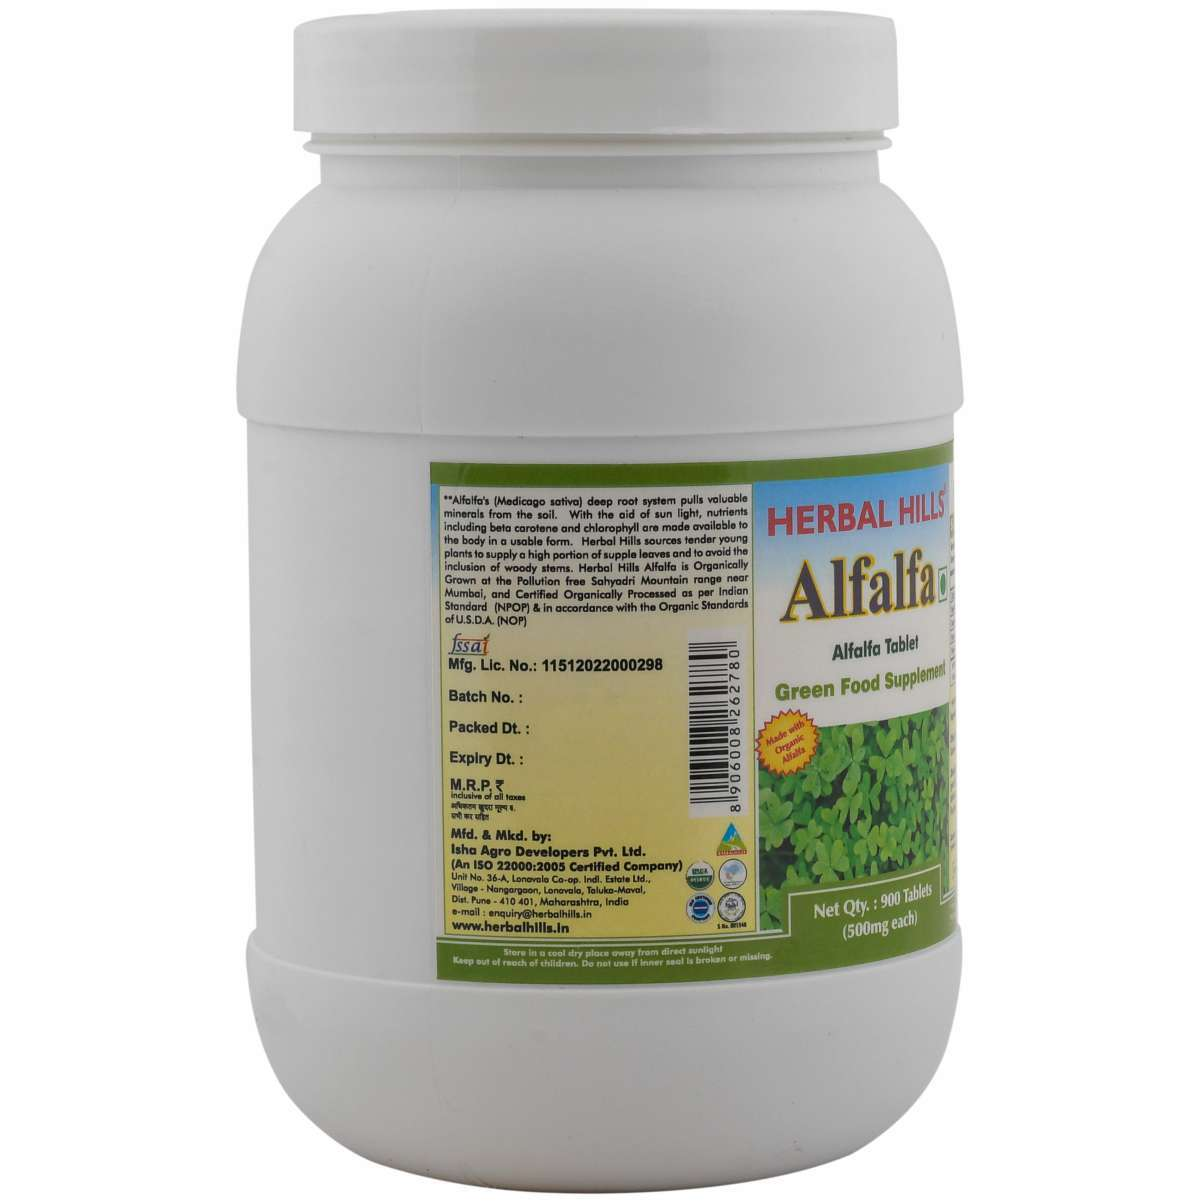 Organic Alfalfa 900 Tablets Value Pack - Weight loss & Blood Circulation